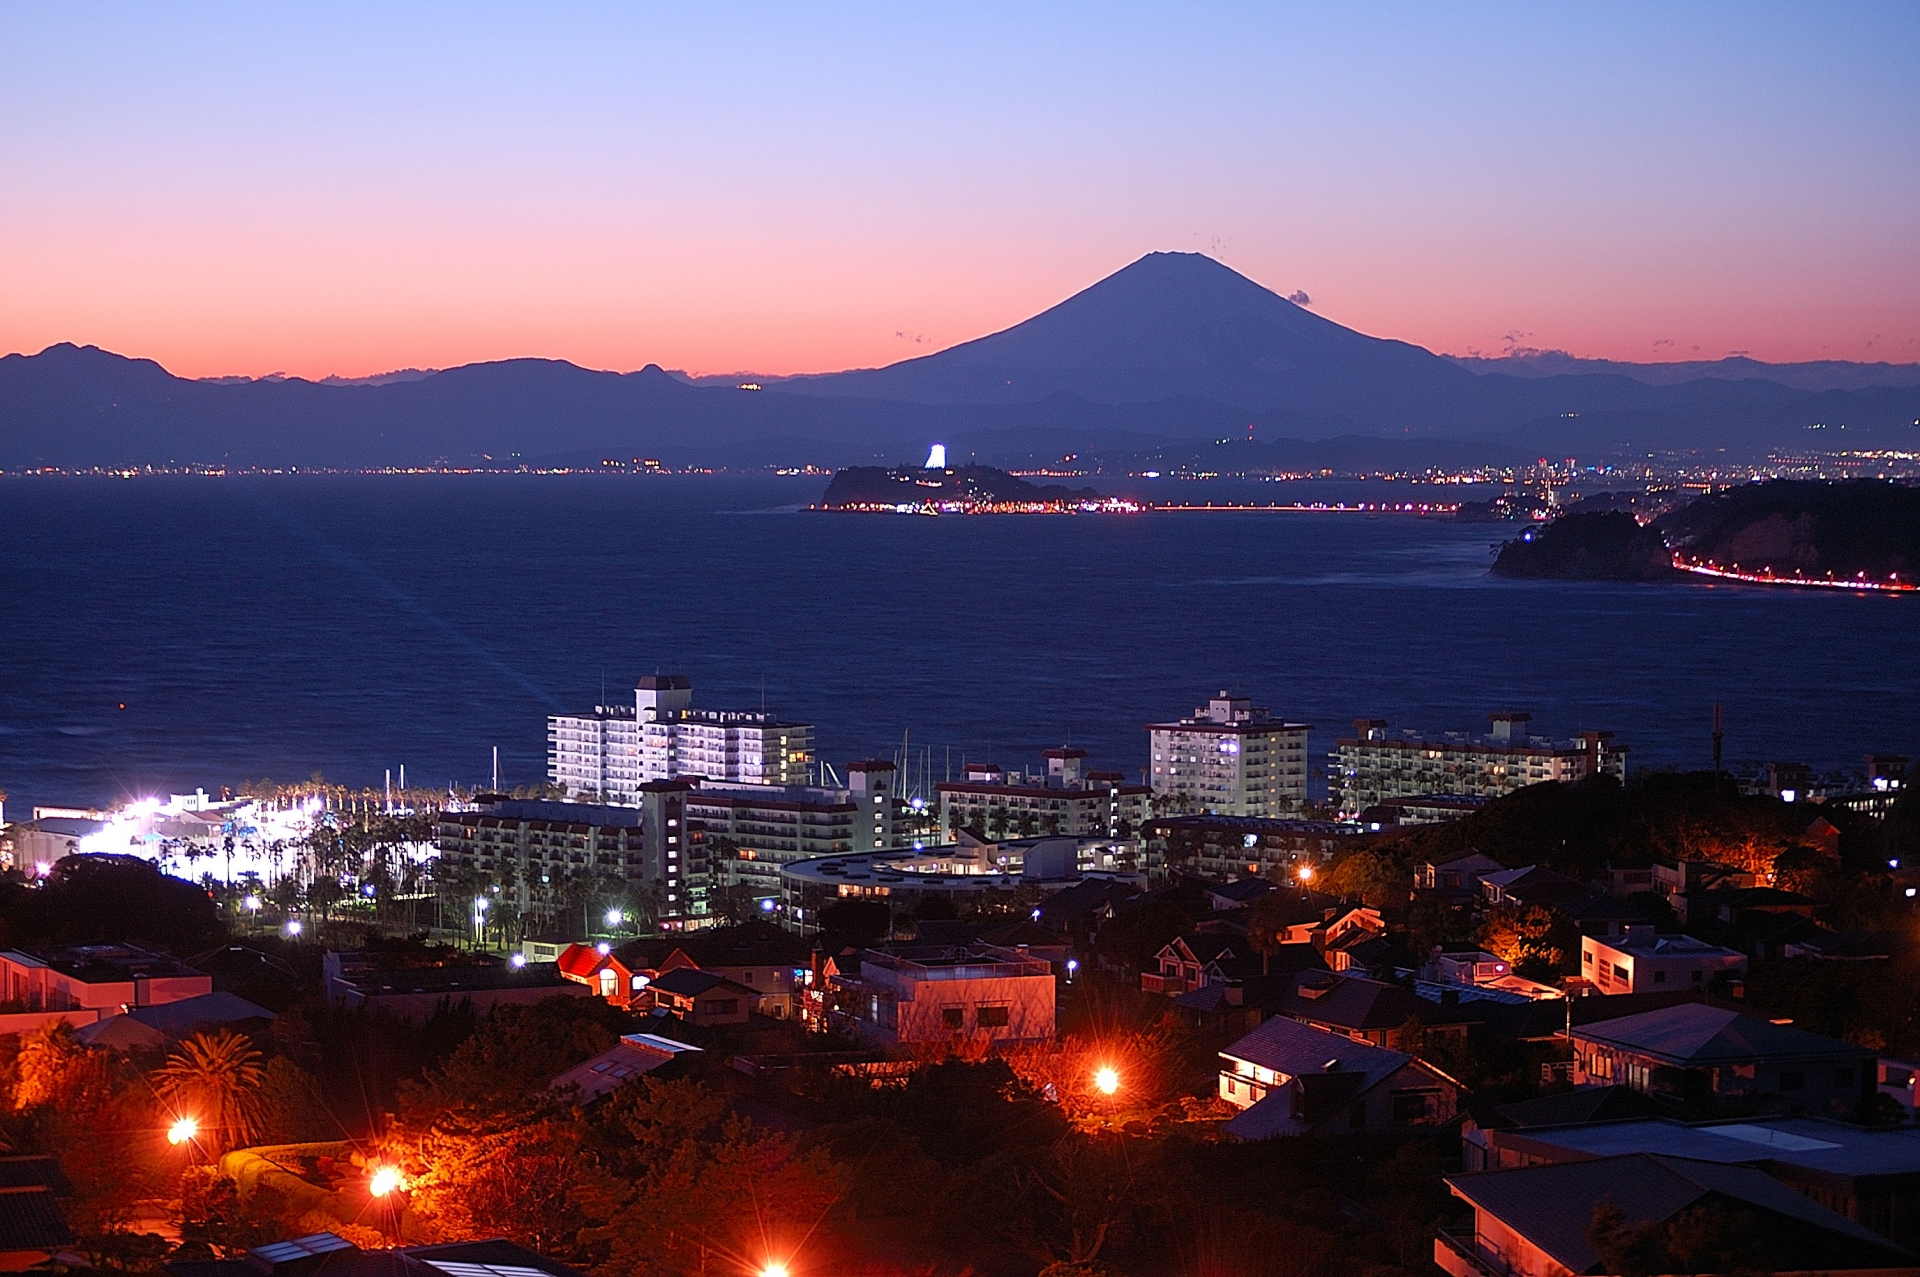 5 Best Photo Worthy Spots in Shonan area, Kanagawa